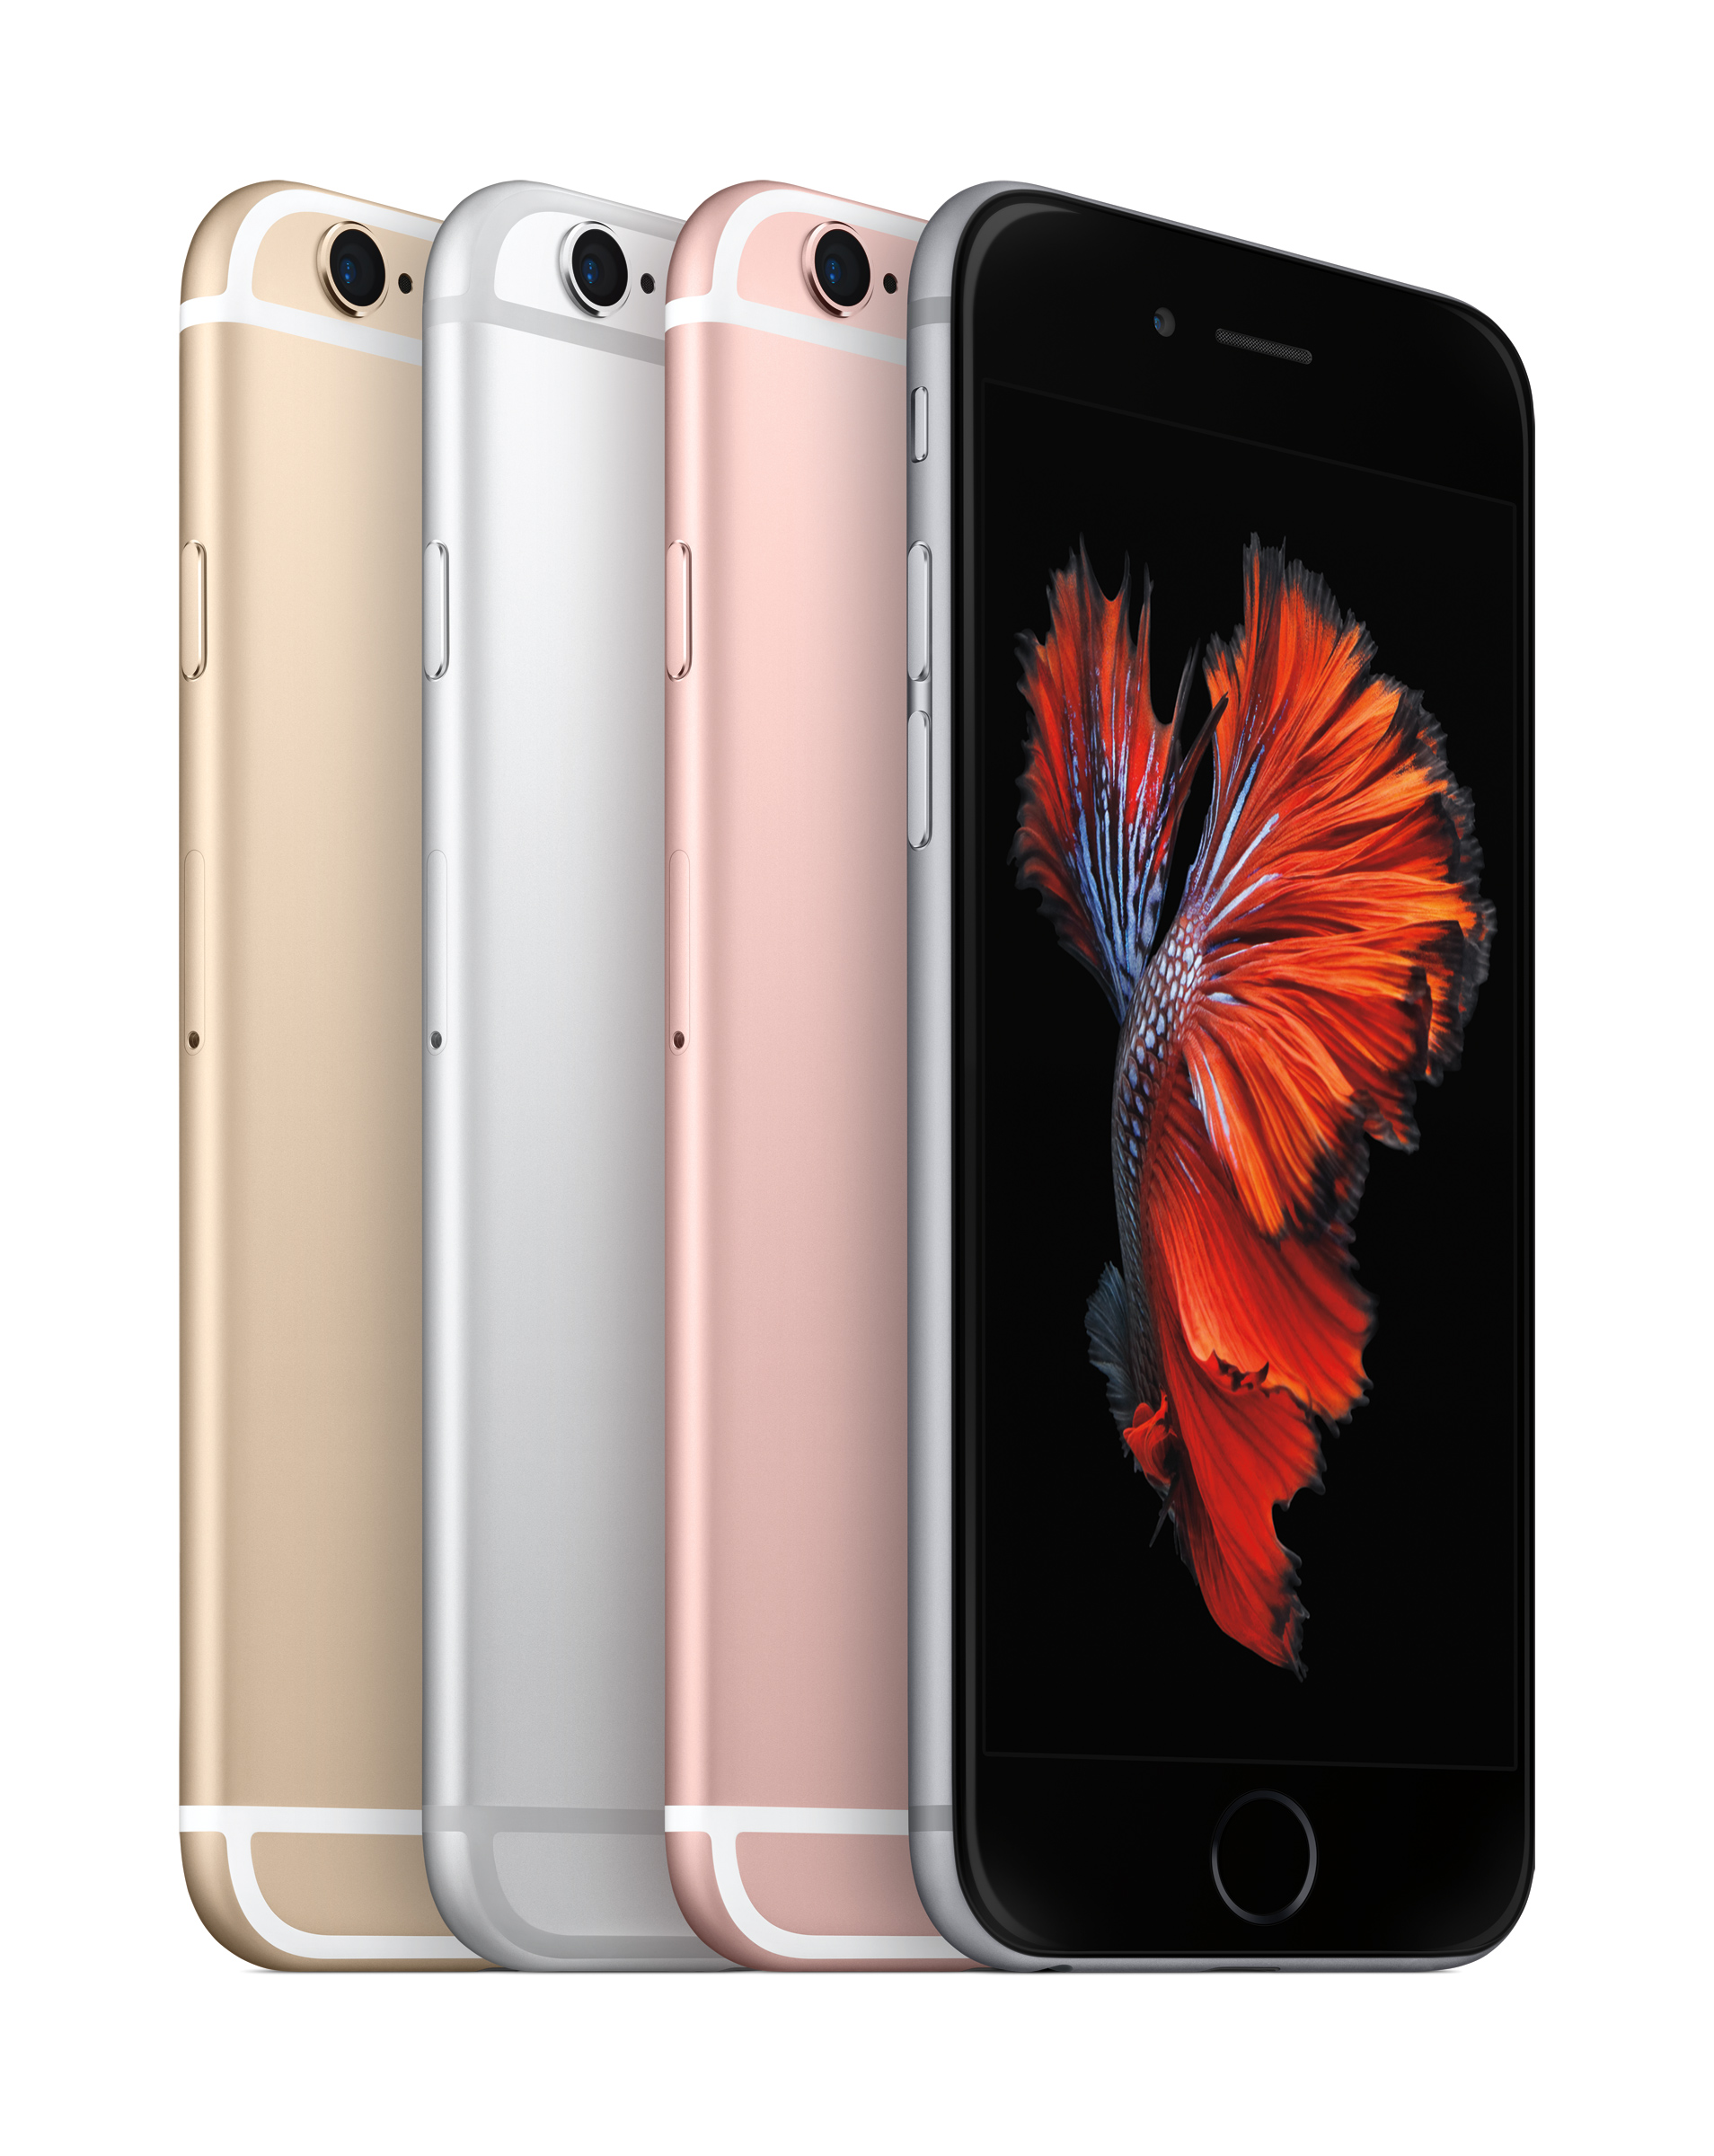 iphone 6s Apple лидер продаж